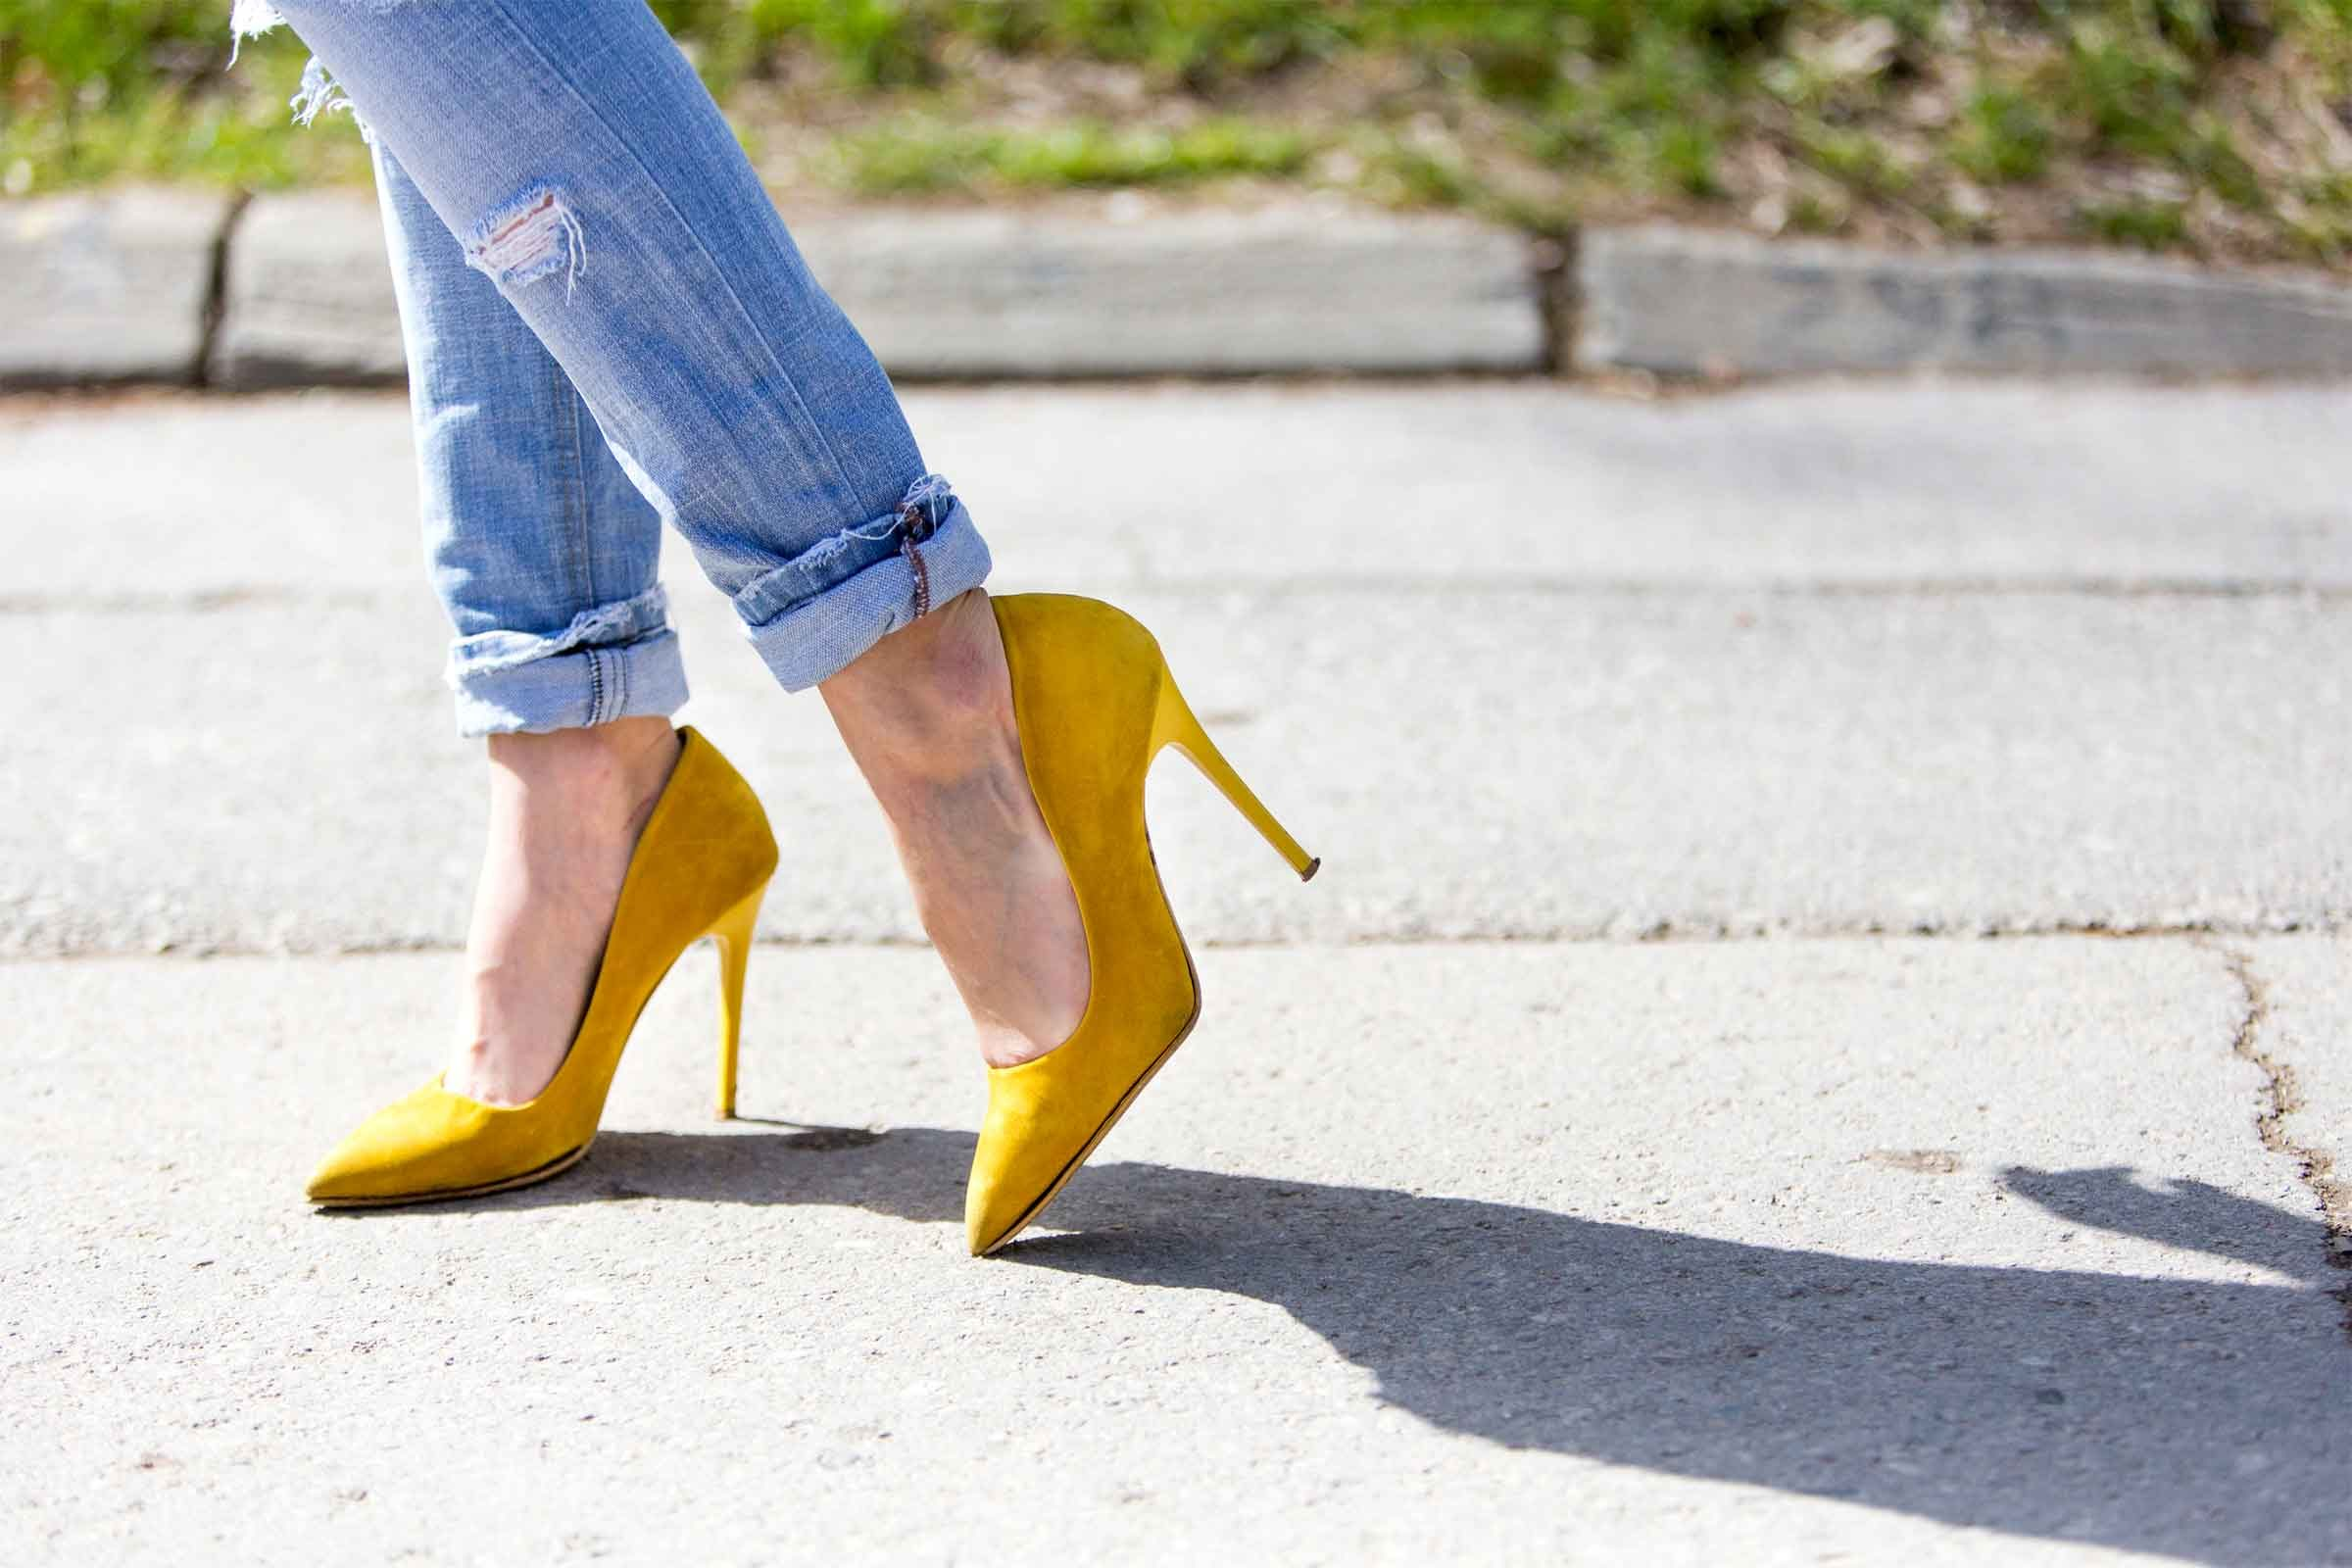 Heels put more pressure on the ball of your foot